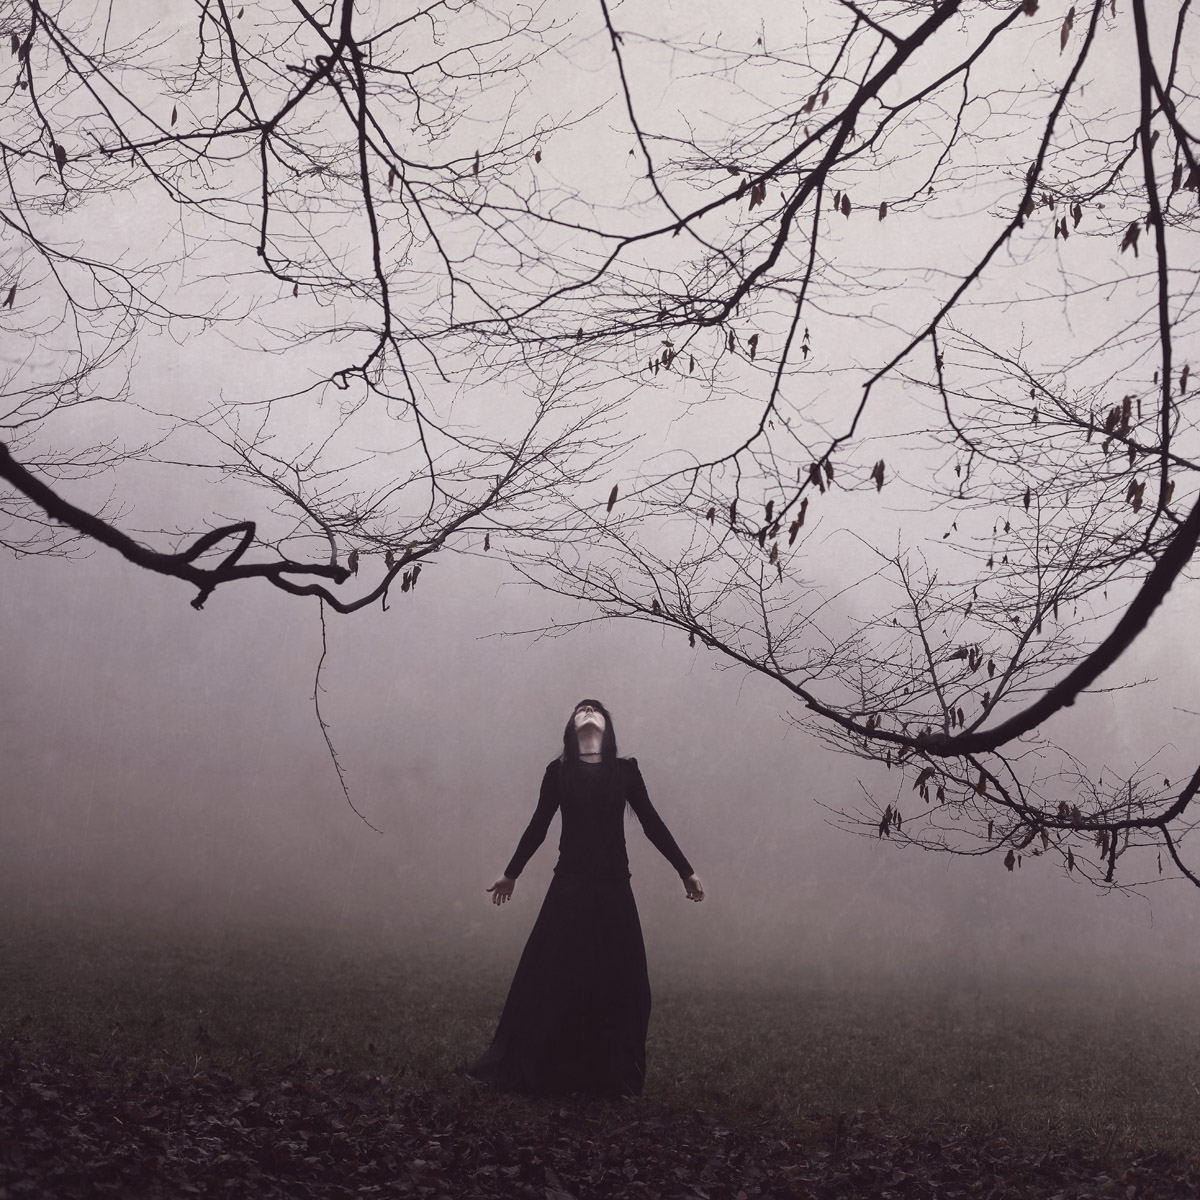 Veins in my body | Anja Matko